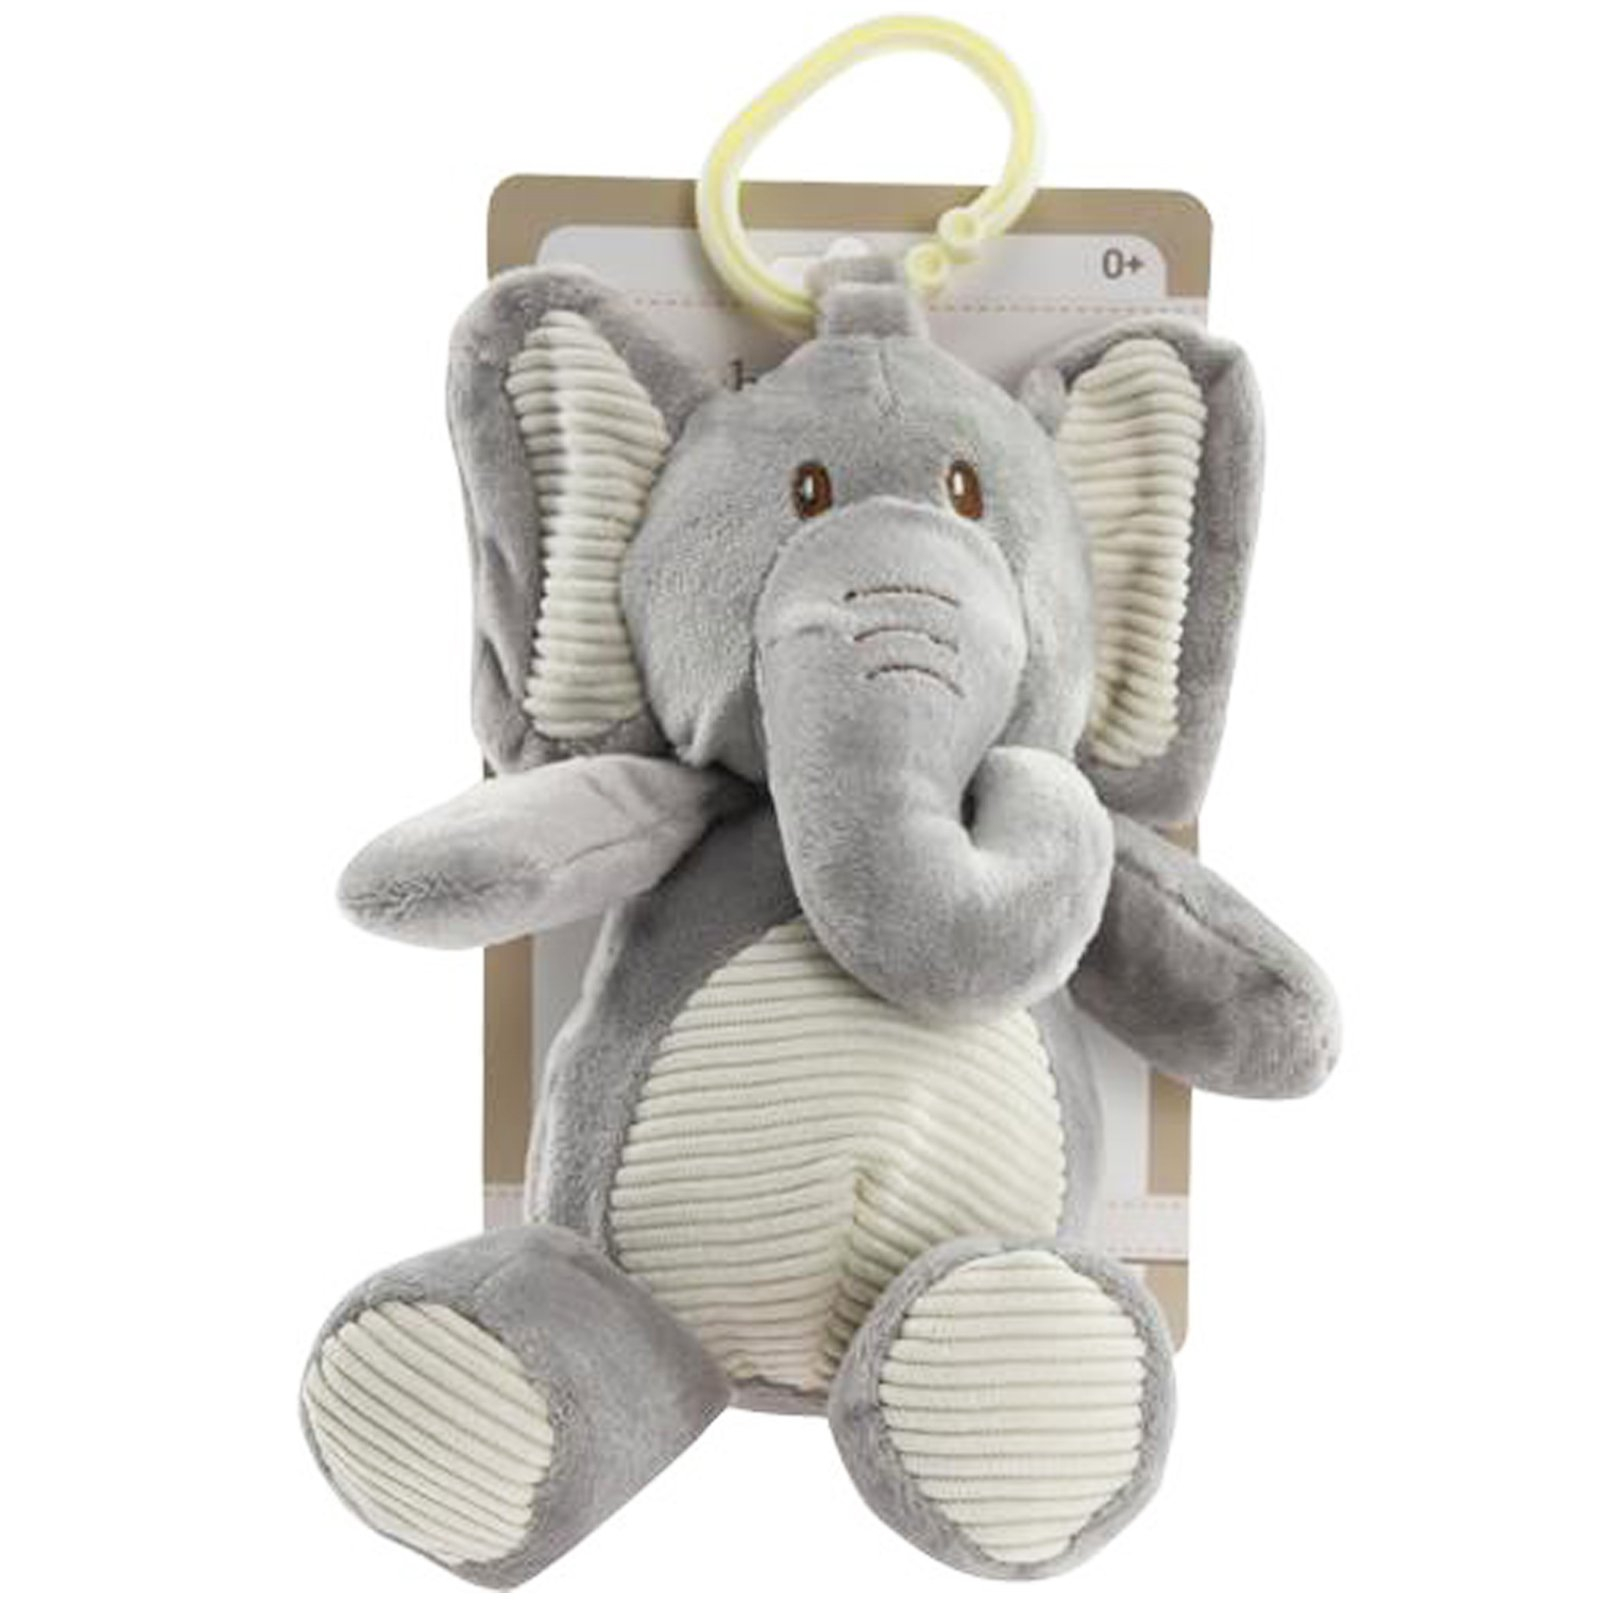 TychoTyke Baby Plush Stuffed Animal Rattle Toy Clips On Pram Grey Elephant